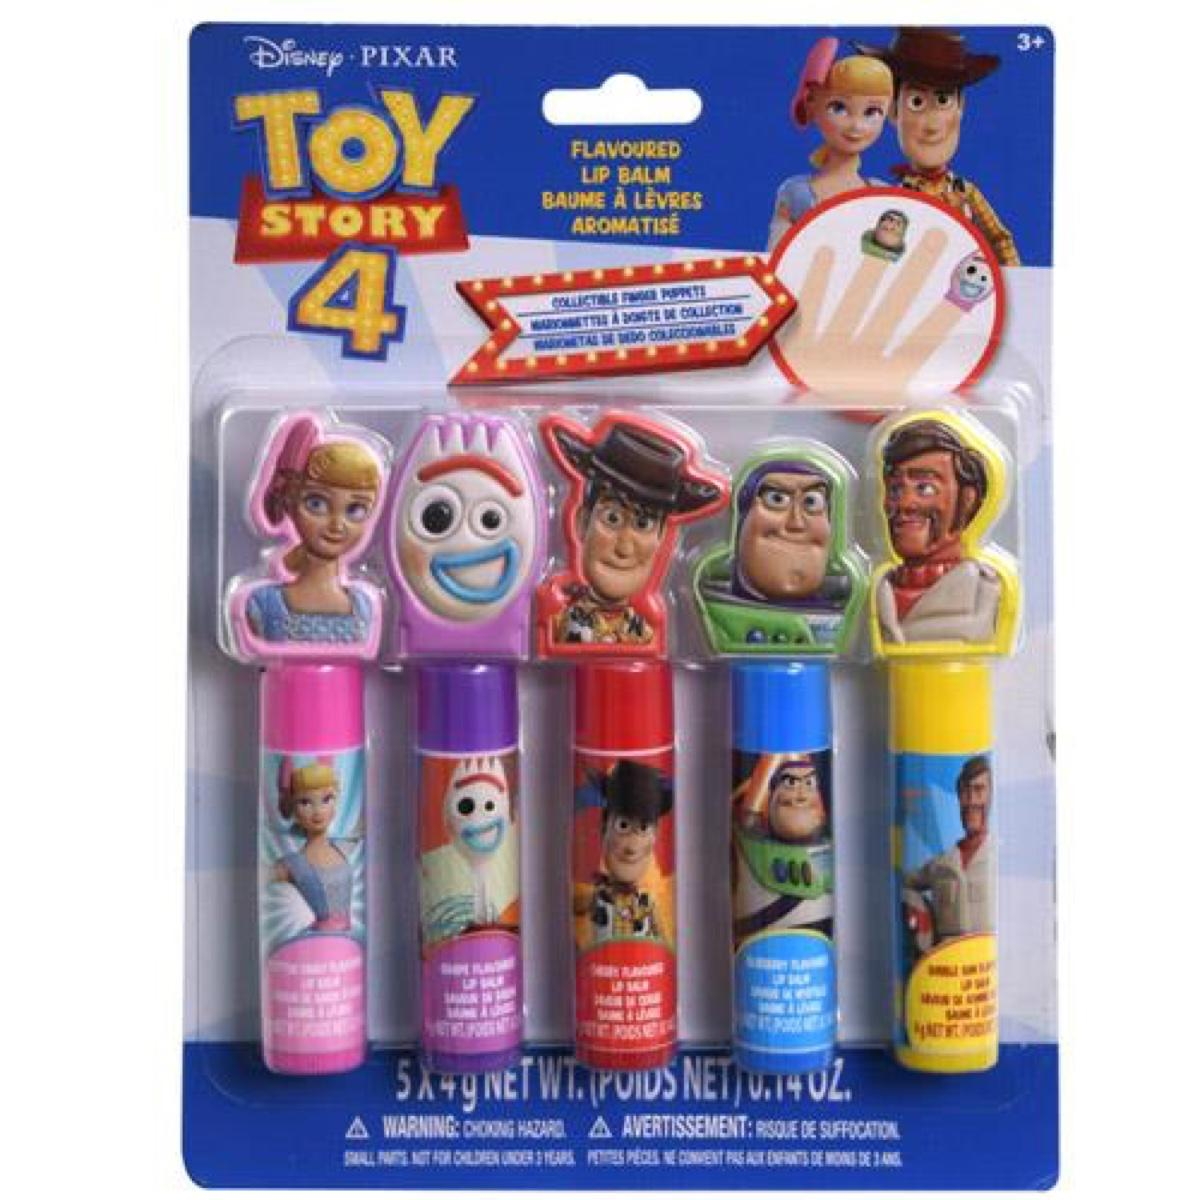 Toy Story 5 PK Flavored Lip Balm With Finger Puppets